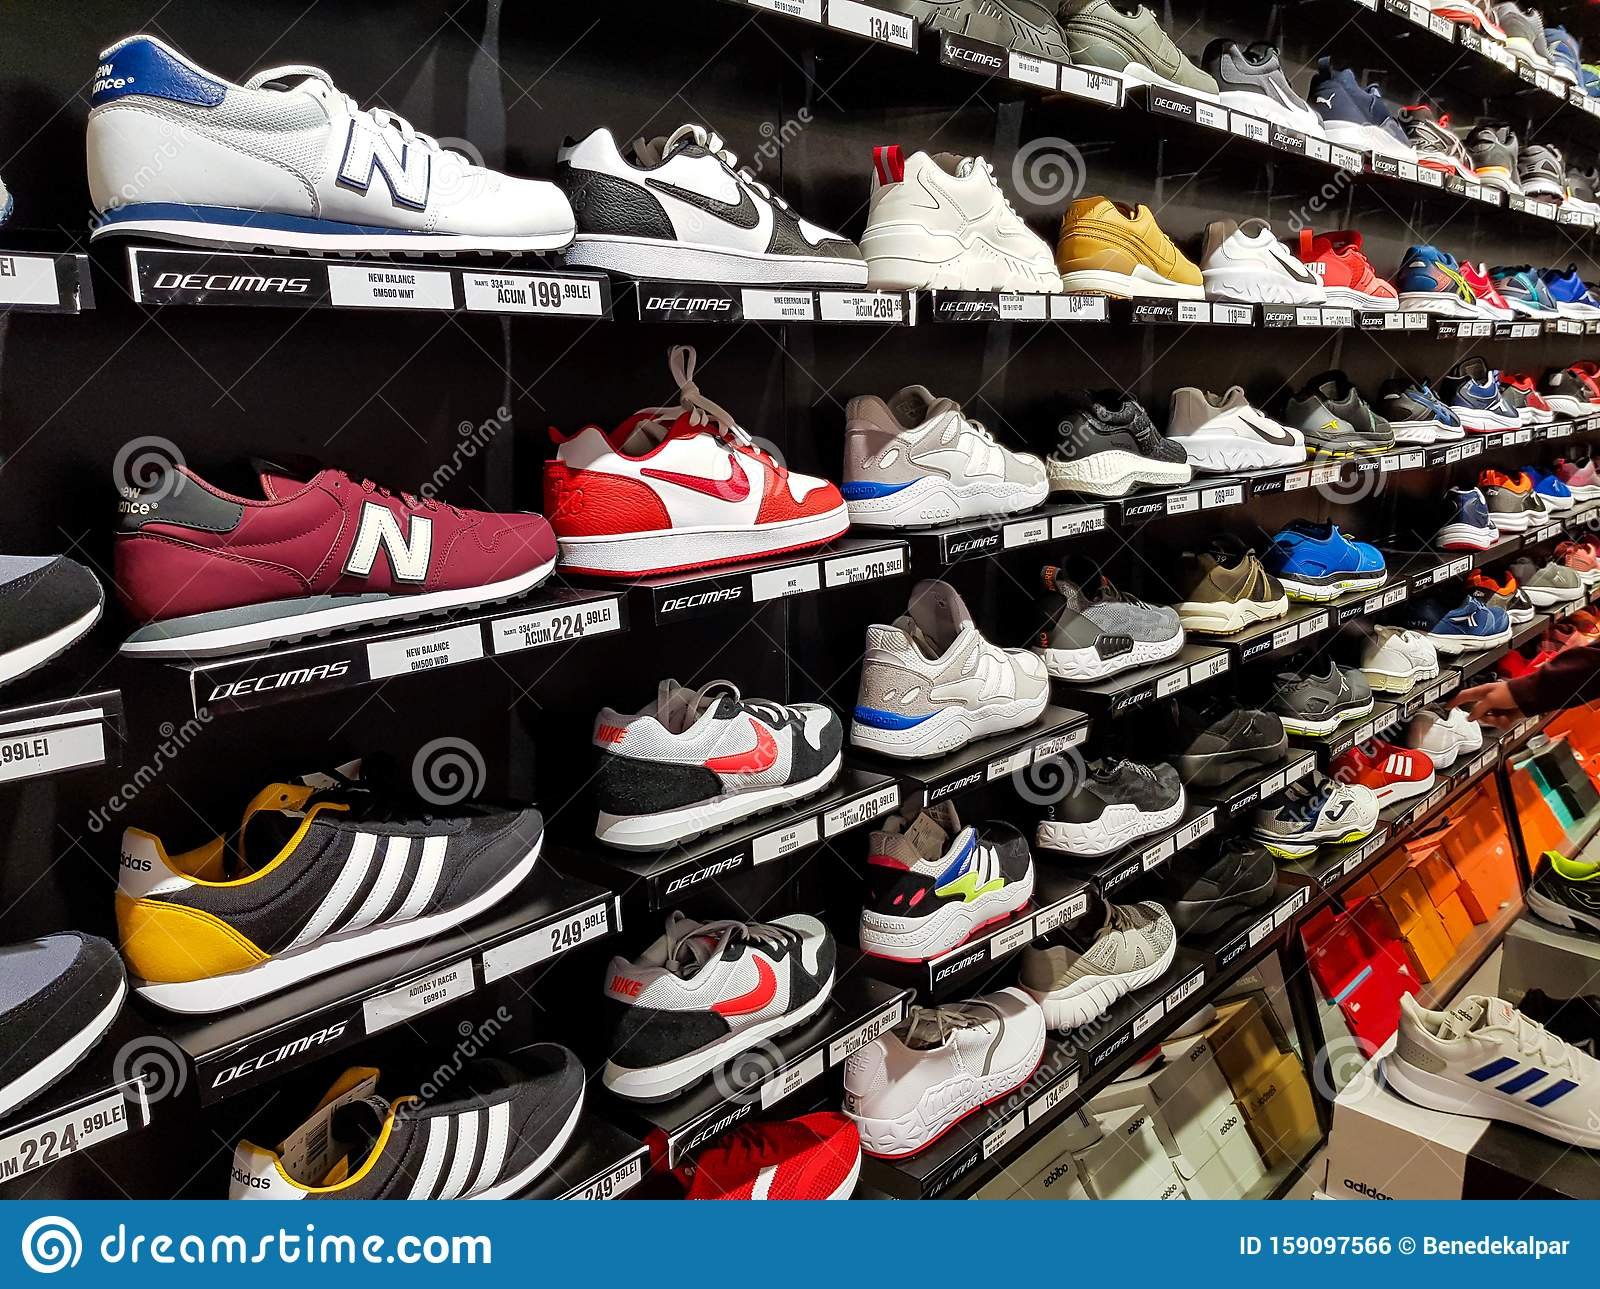 chaussures nike et adidas